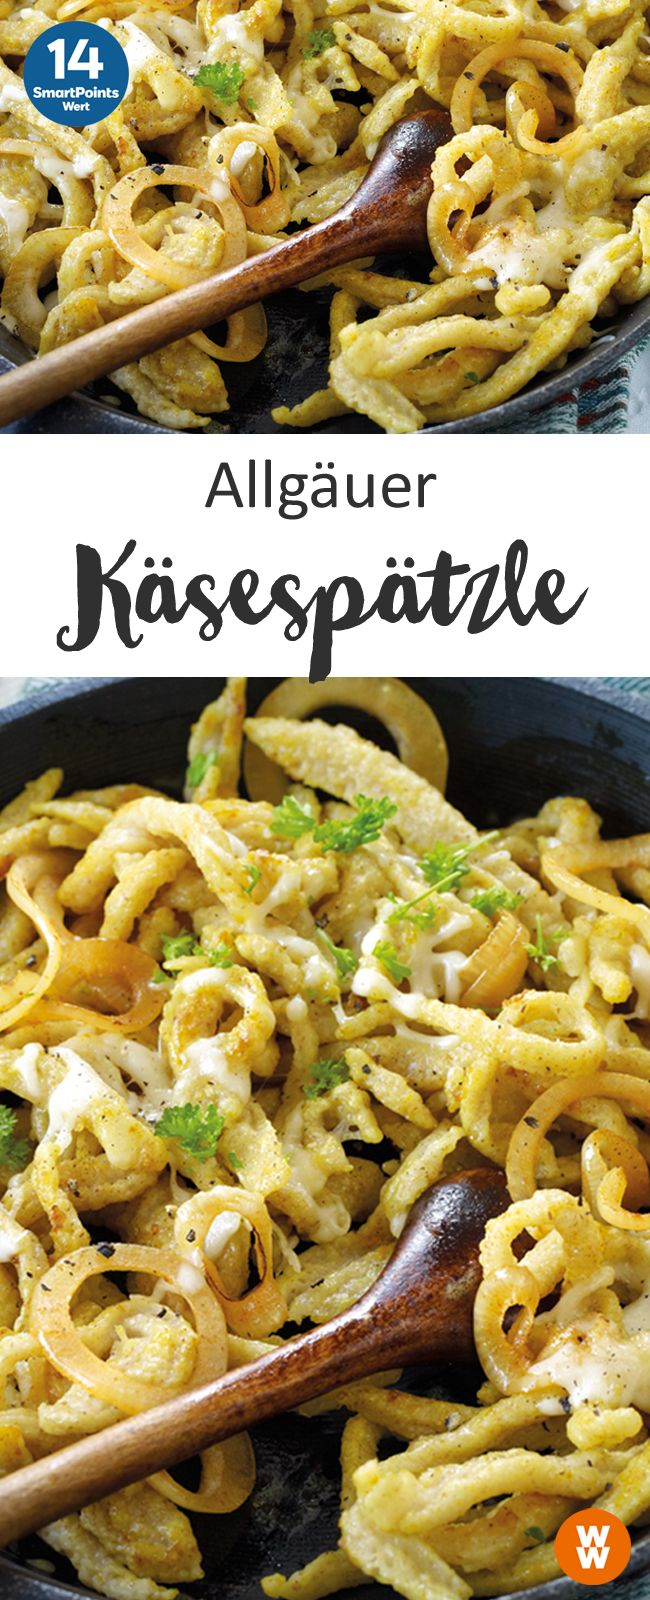 Photo of Allgäu style cheese spaetzle | 2 servings, 14 SmartPoints / serving, Weight W …